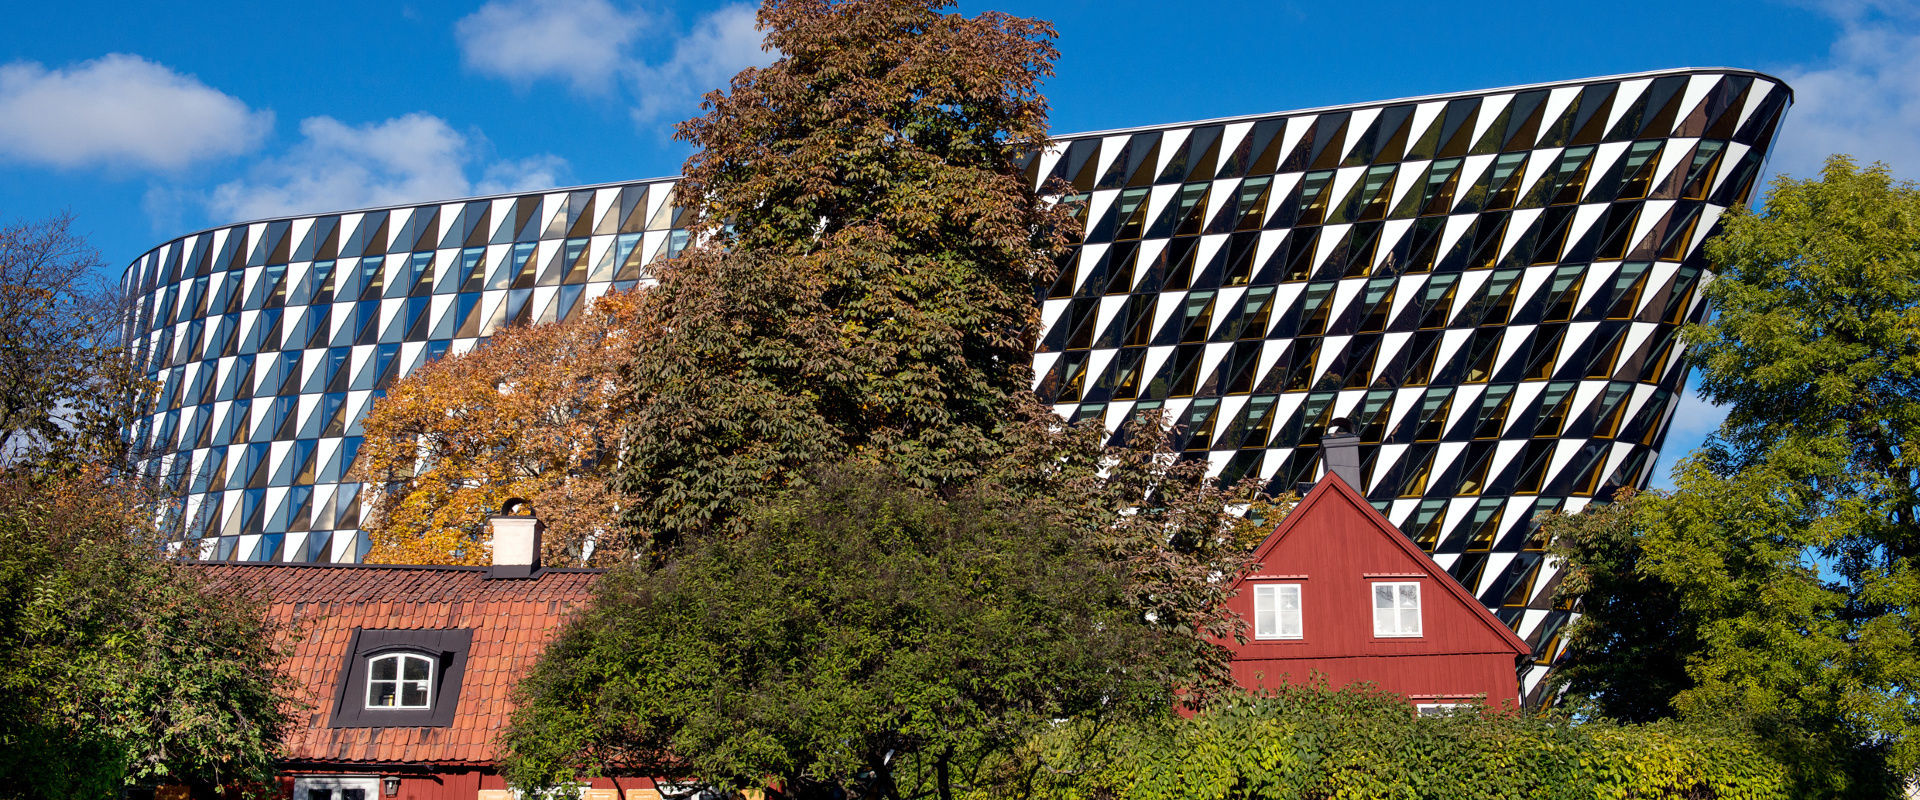 Aula Medica at Karolinska Institutet